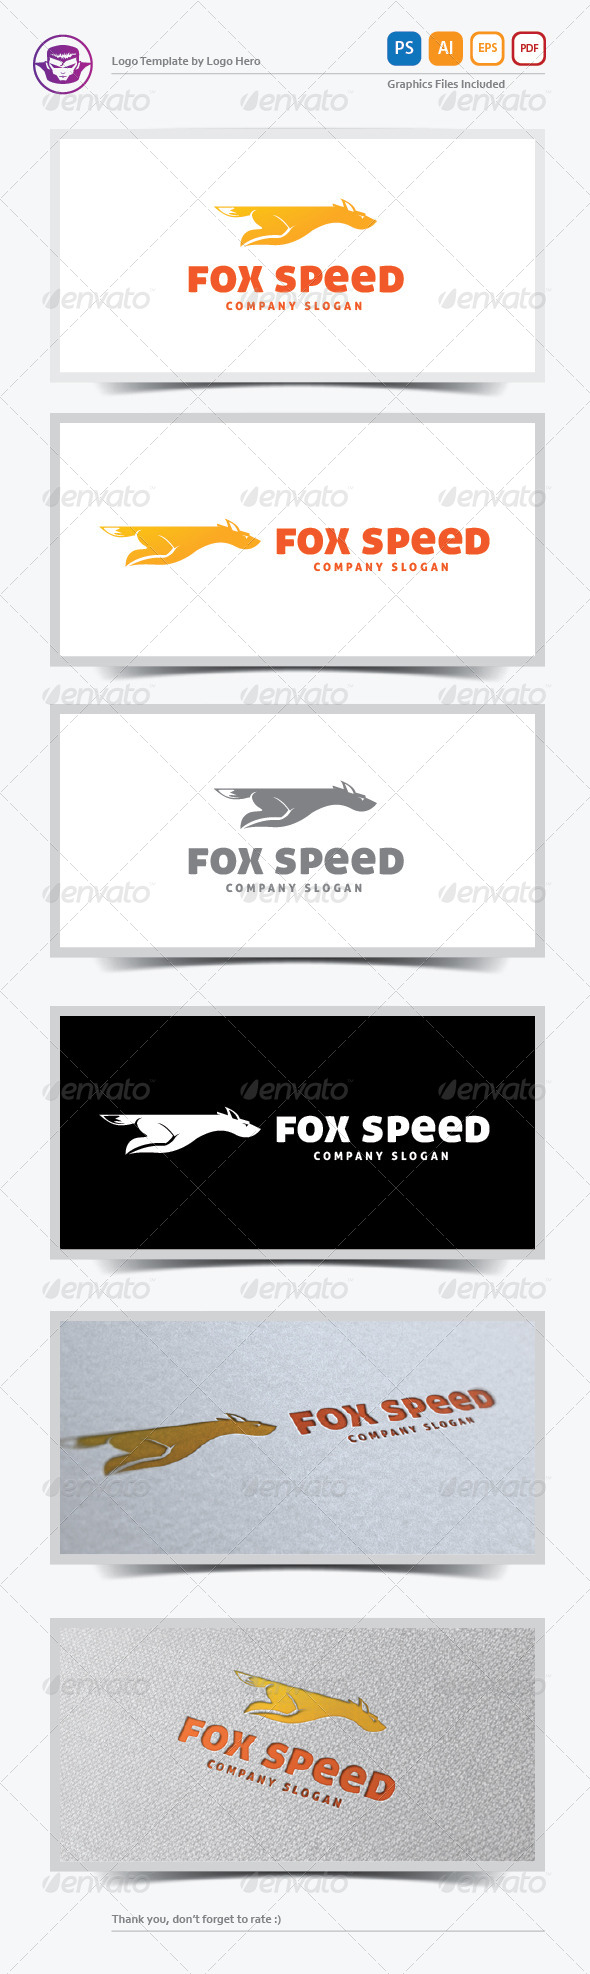 GraphicRiver Fox Speed Logo Template 5735253